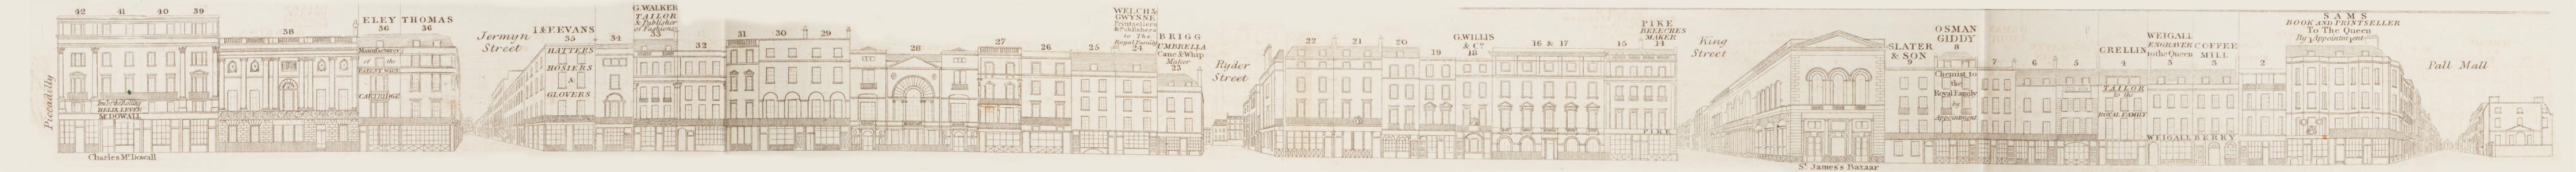 map - Tallis's London street views : No. 14. St. James's Street (east)